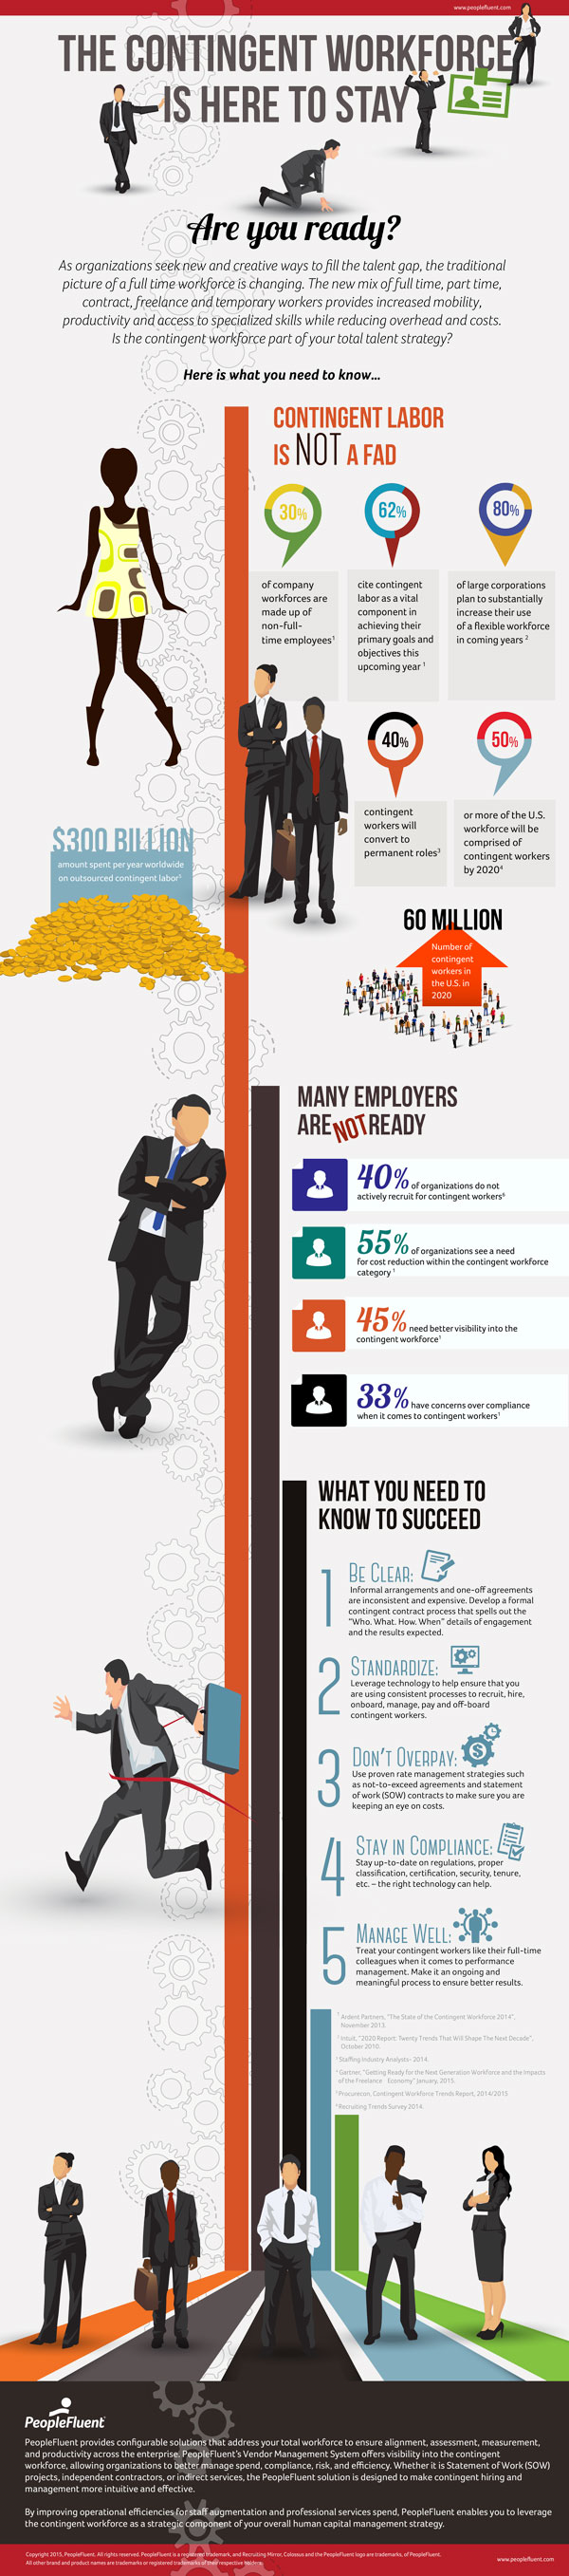 contingent_workforce_is_here_to_stay_inforgraphic2